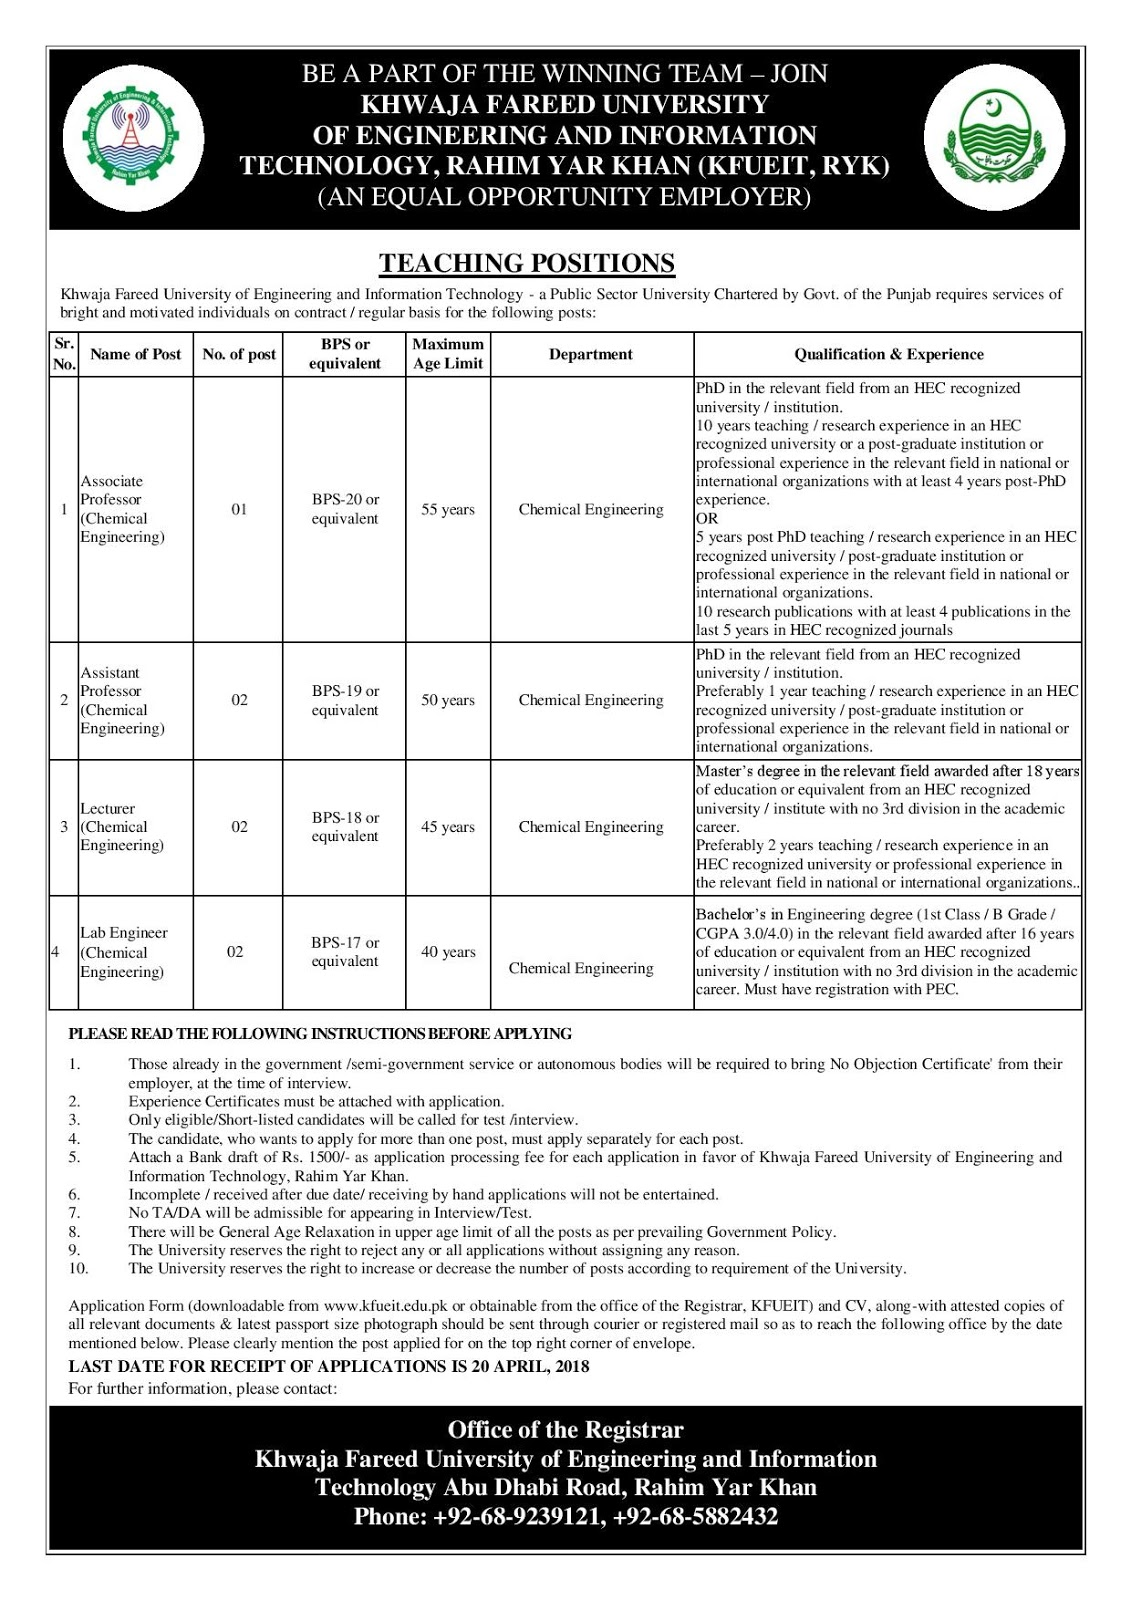 Teaching Jobs of associate professor, Assistant Professor, lecturer, lab engineer at Khawaja farid University of Engineering and Information Technology Rahim Yar Khan